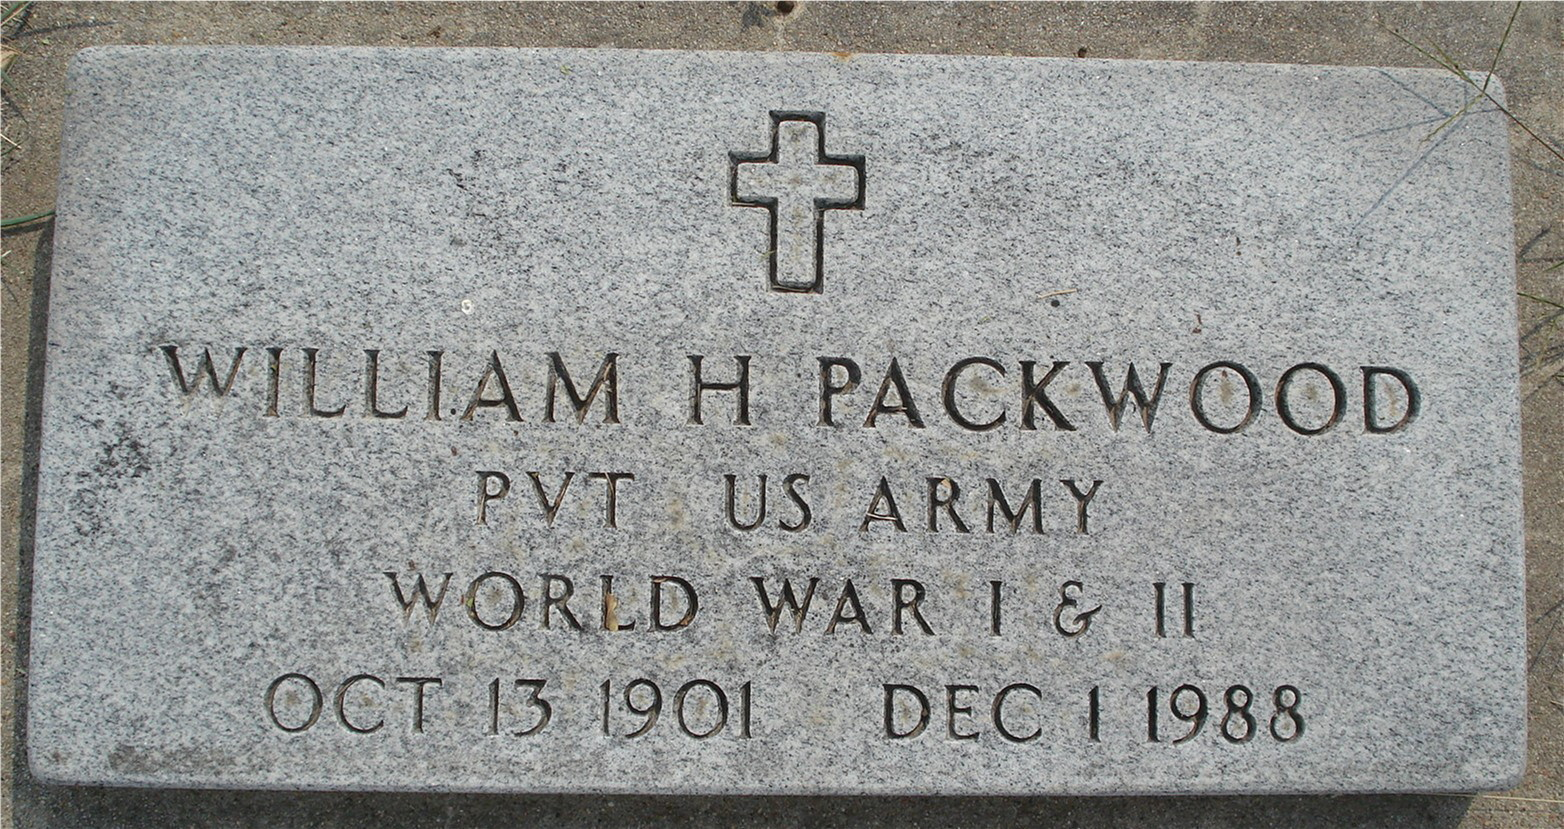 William H Packwood